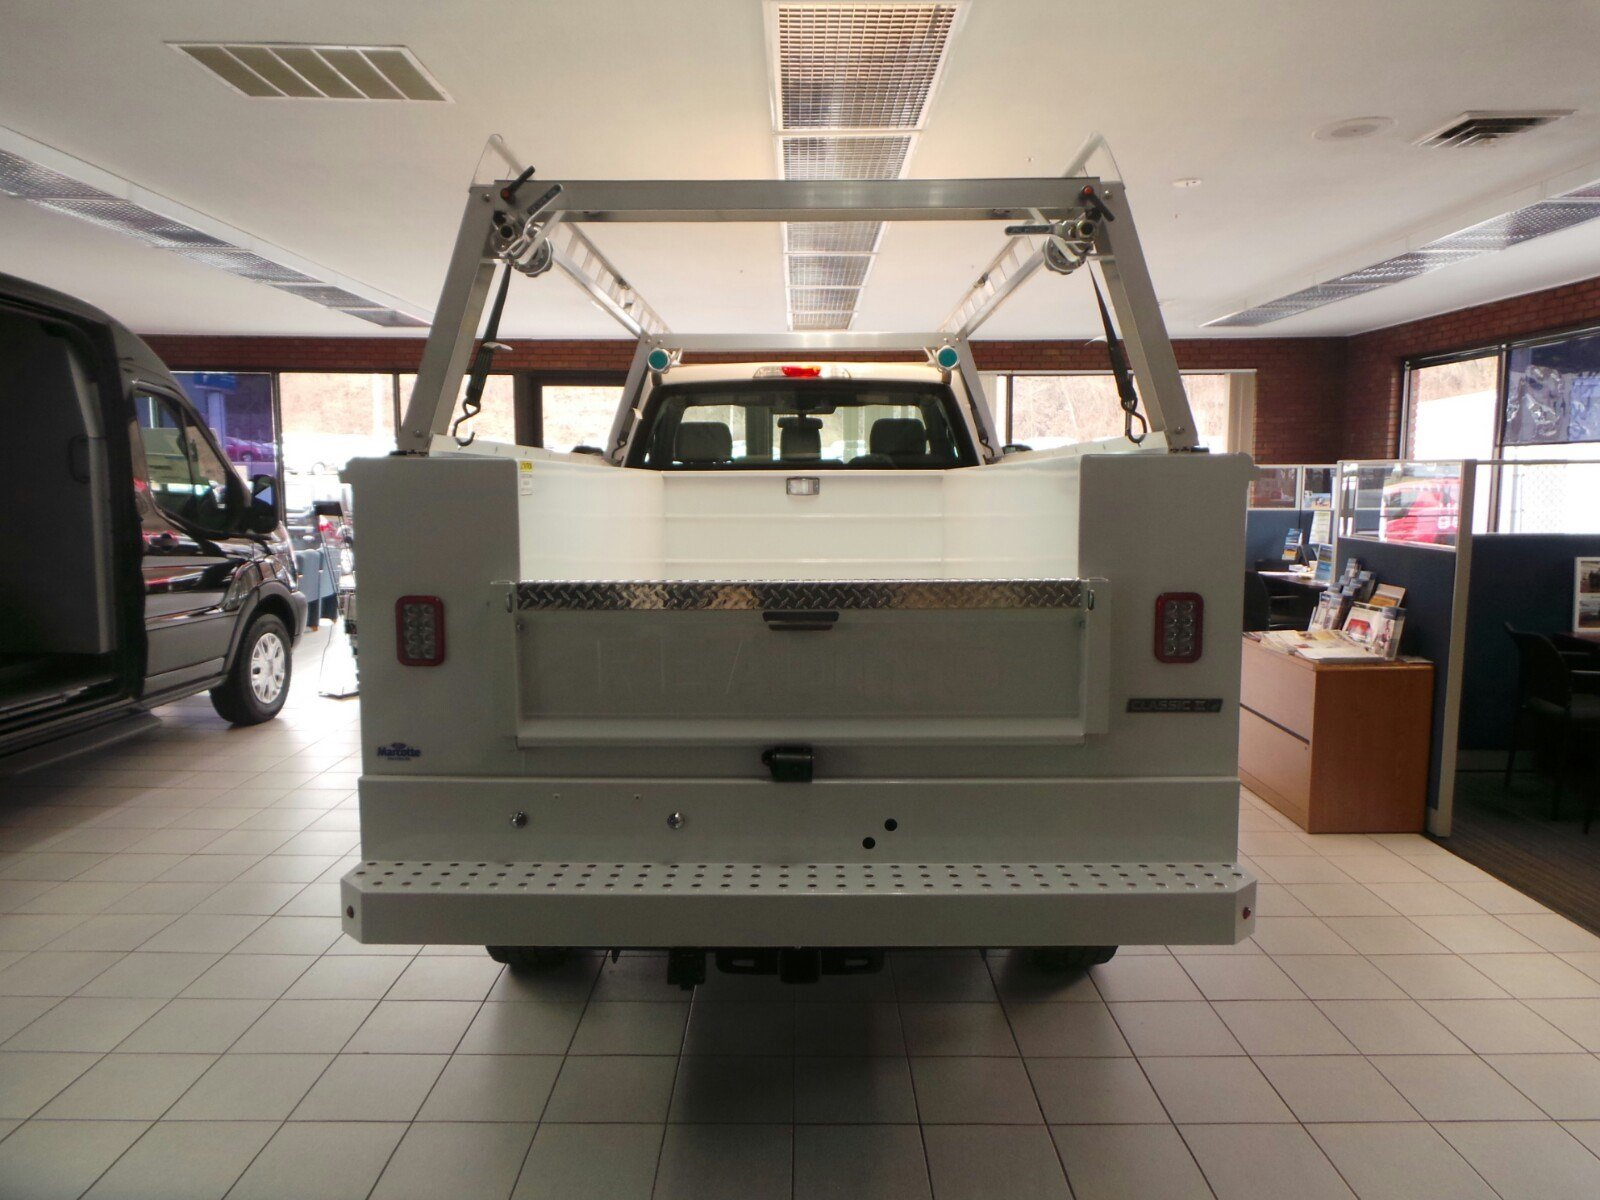 2019 F-350 Regular Cab 4x4,  Reading Classic II Aluminum  Service Body #S7183 - photo 3